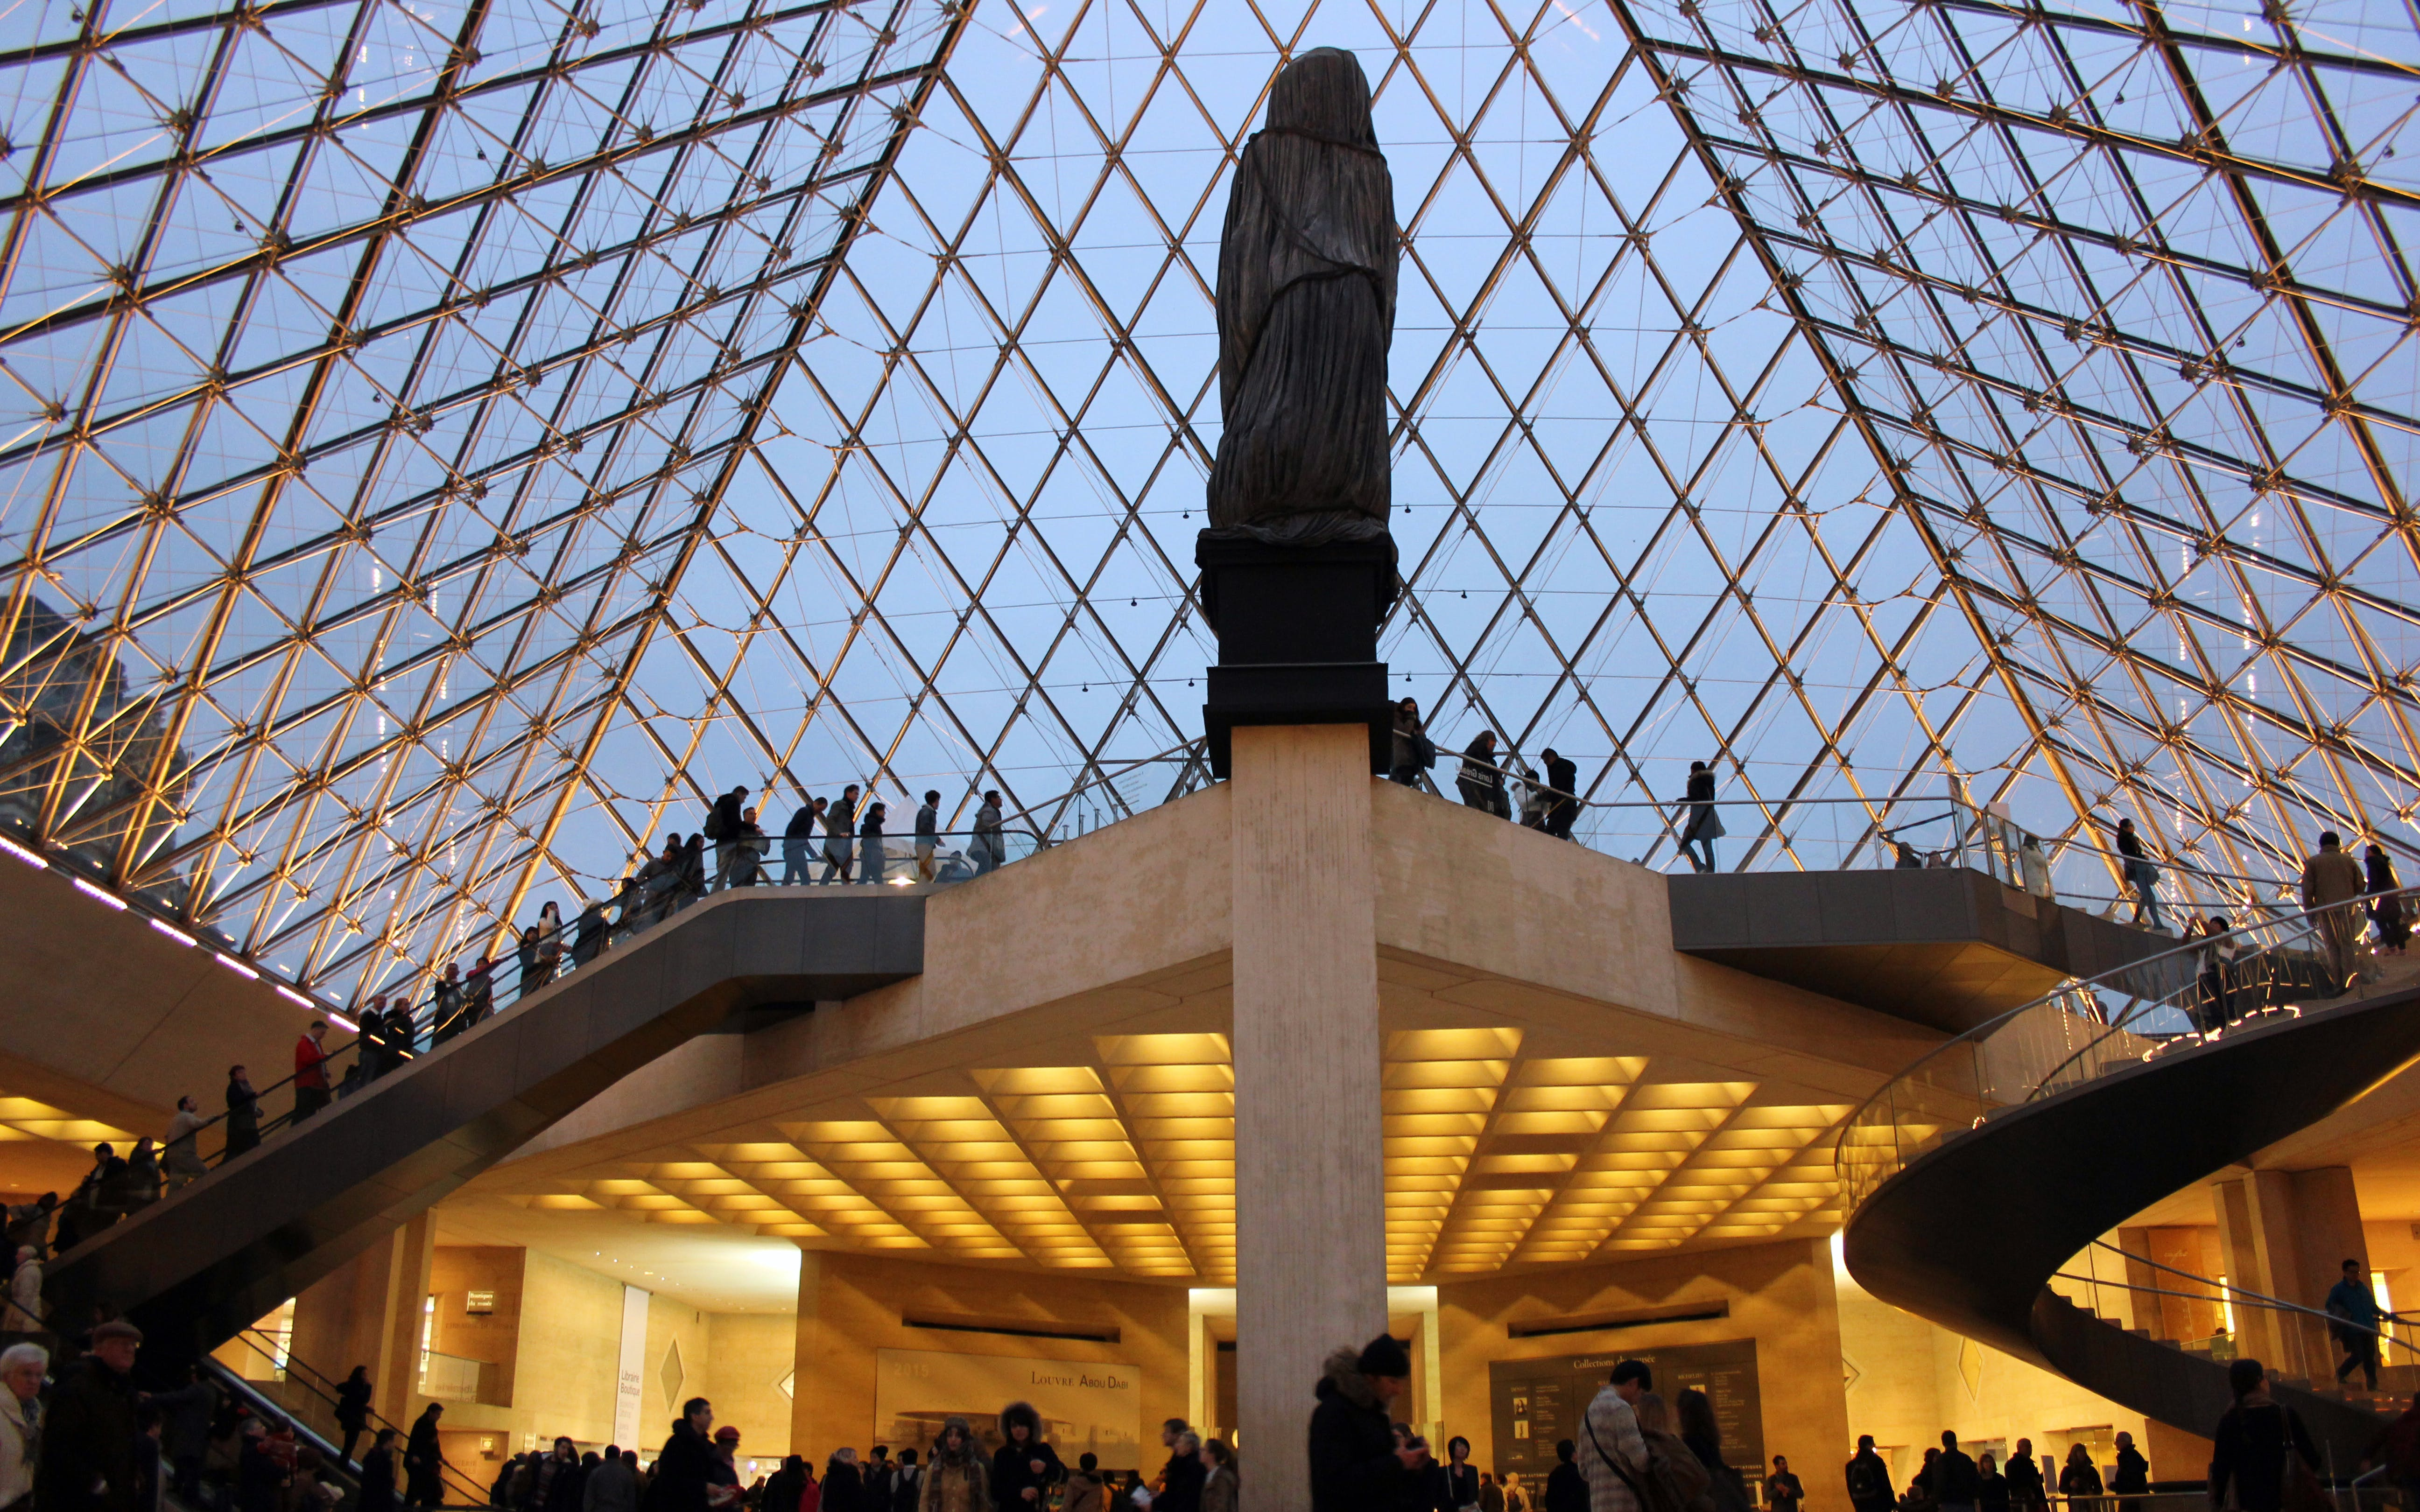 louvre museum dedicated entrance + skip the line picasso museum tickets-2